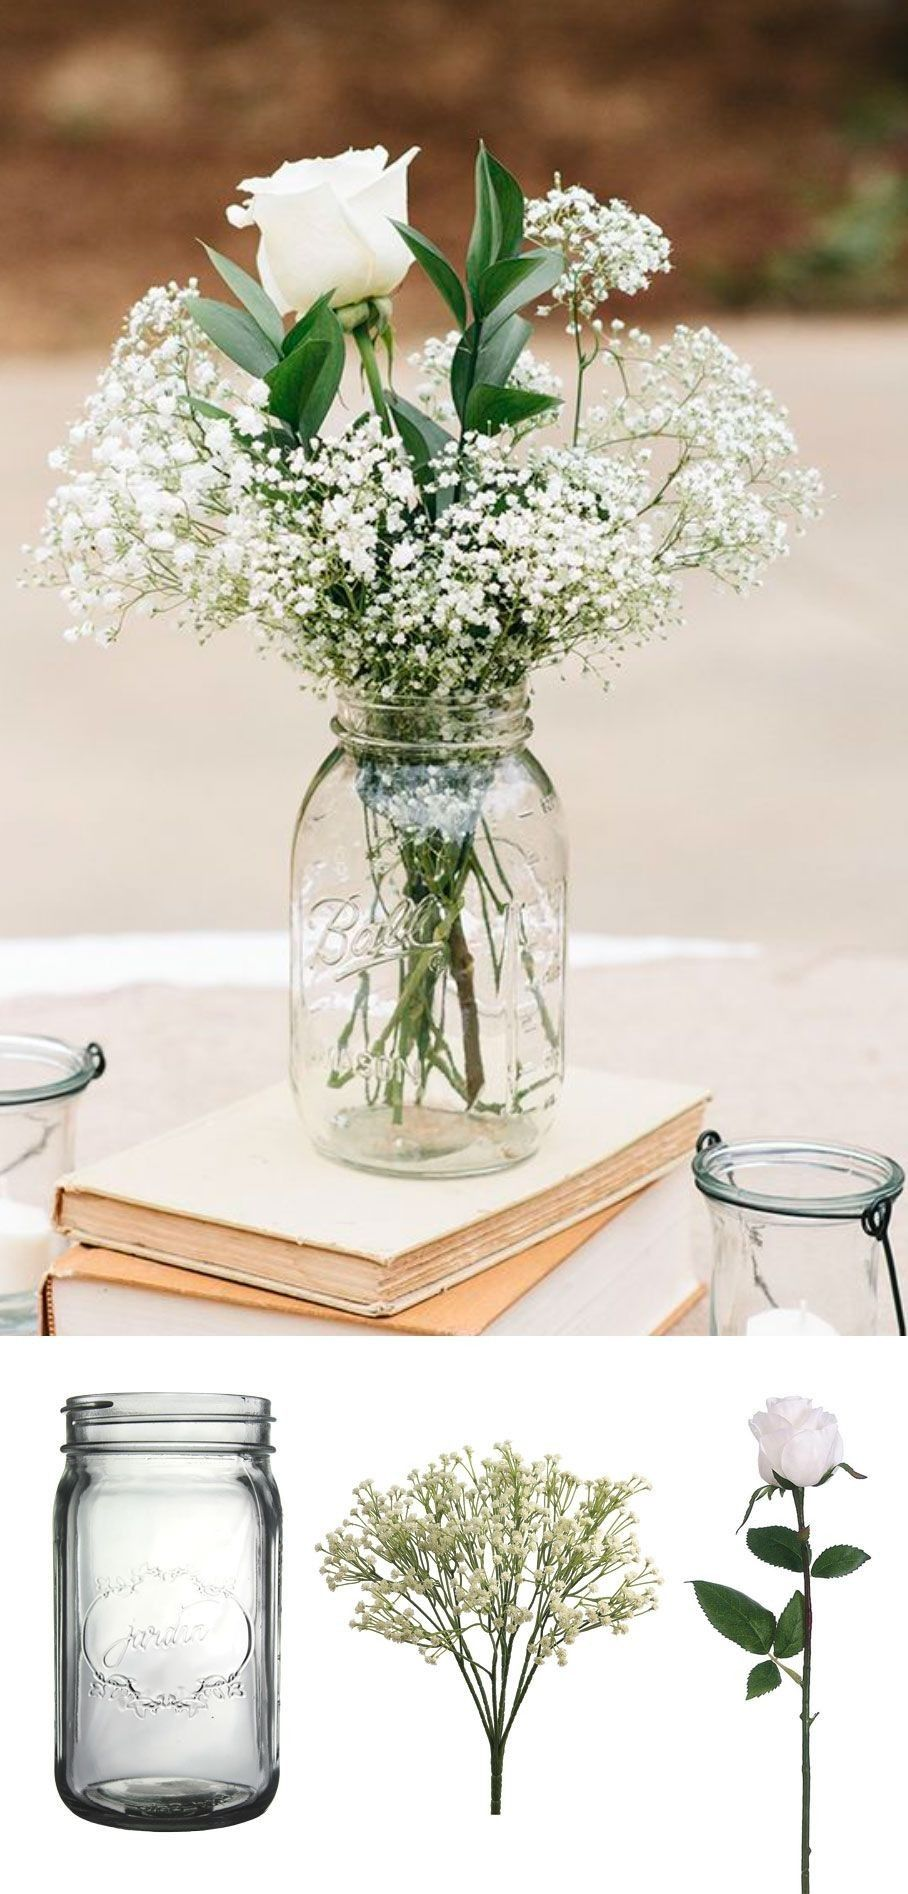 Mason jar decor, diy decor, flowers, vase, wedding, rustic wedding ...